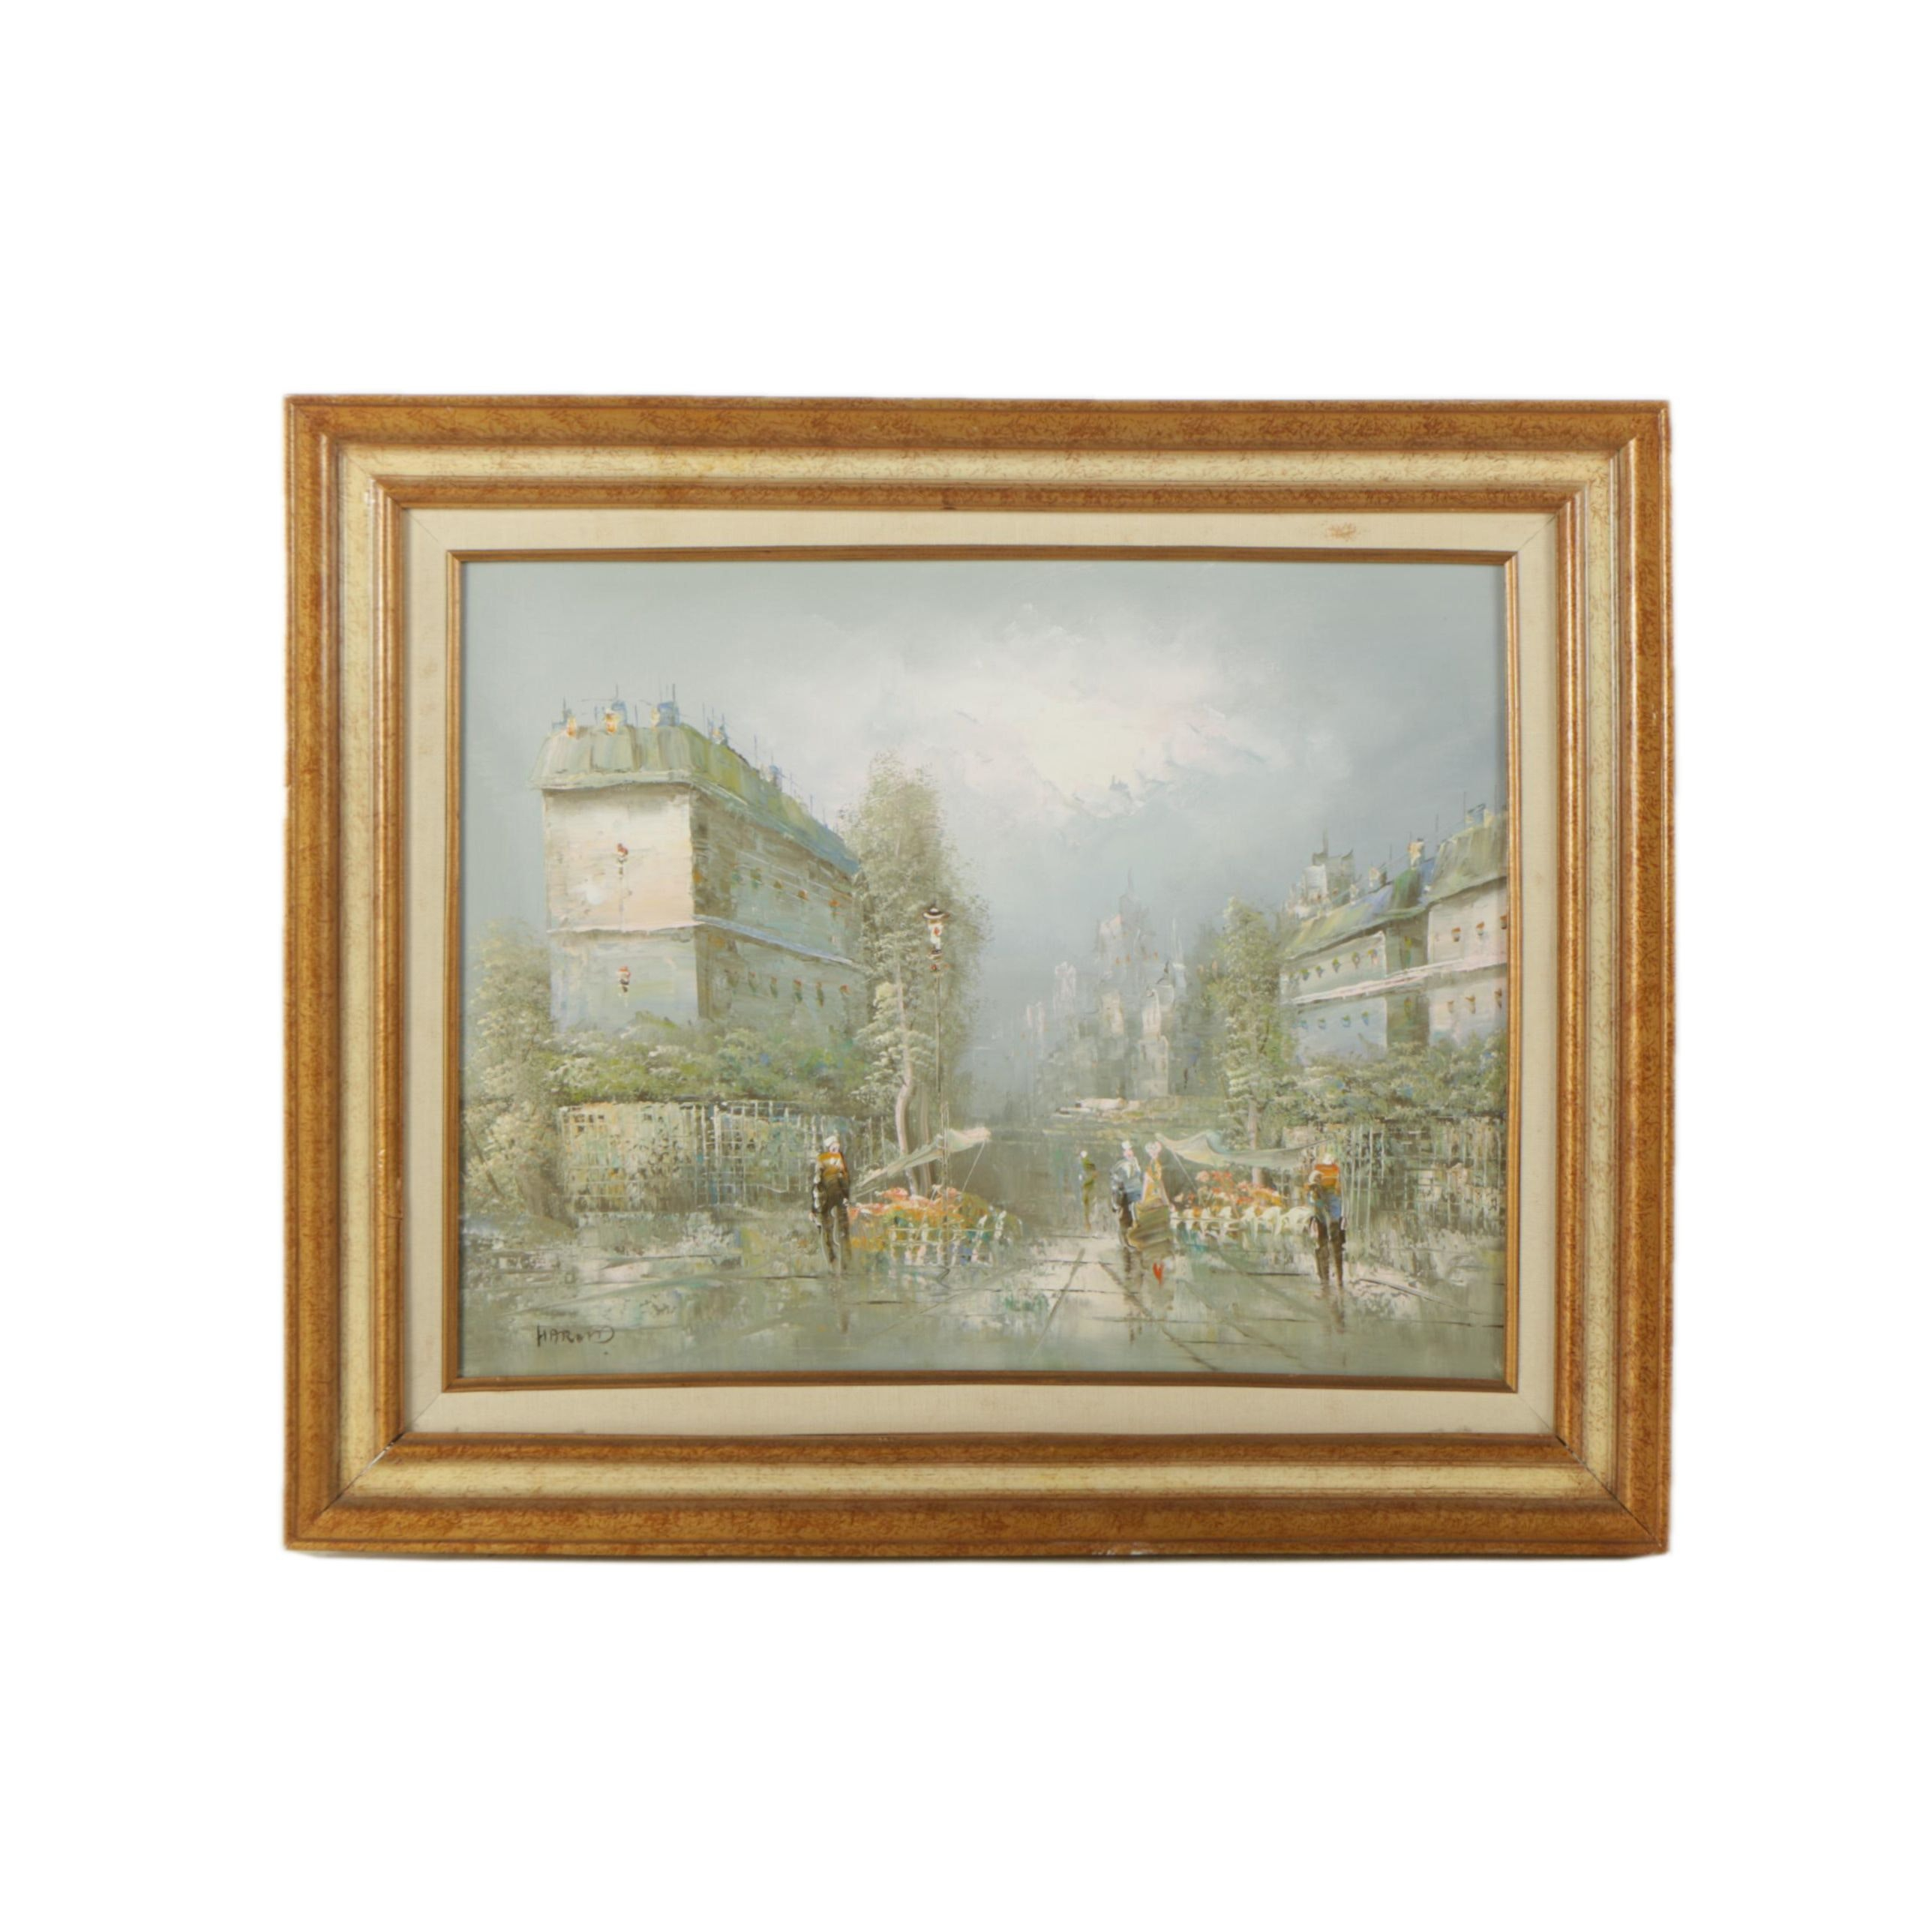 Harand Oil Painting on Canvas of Impressionist-Inspired Parisian Street Scene